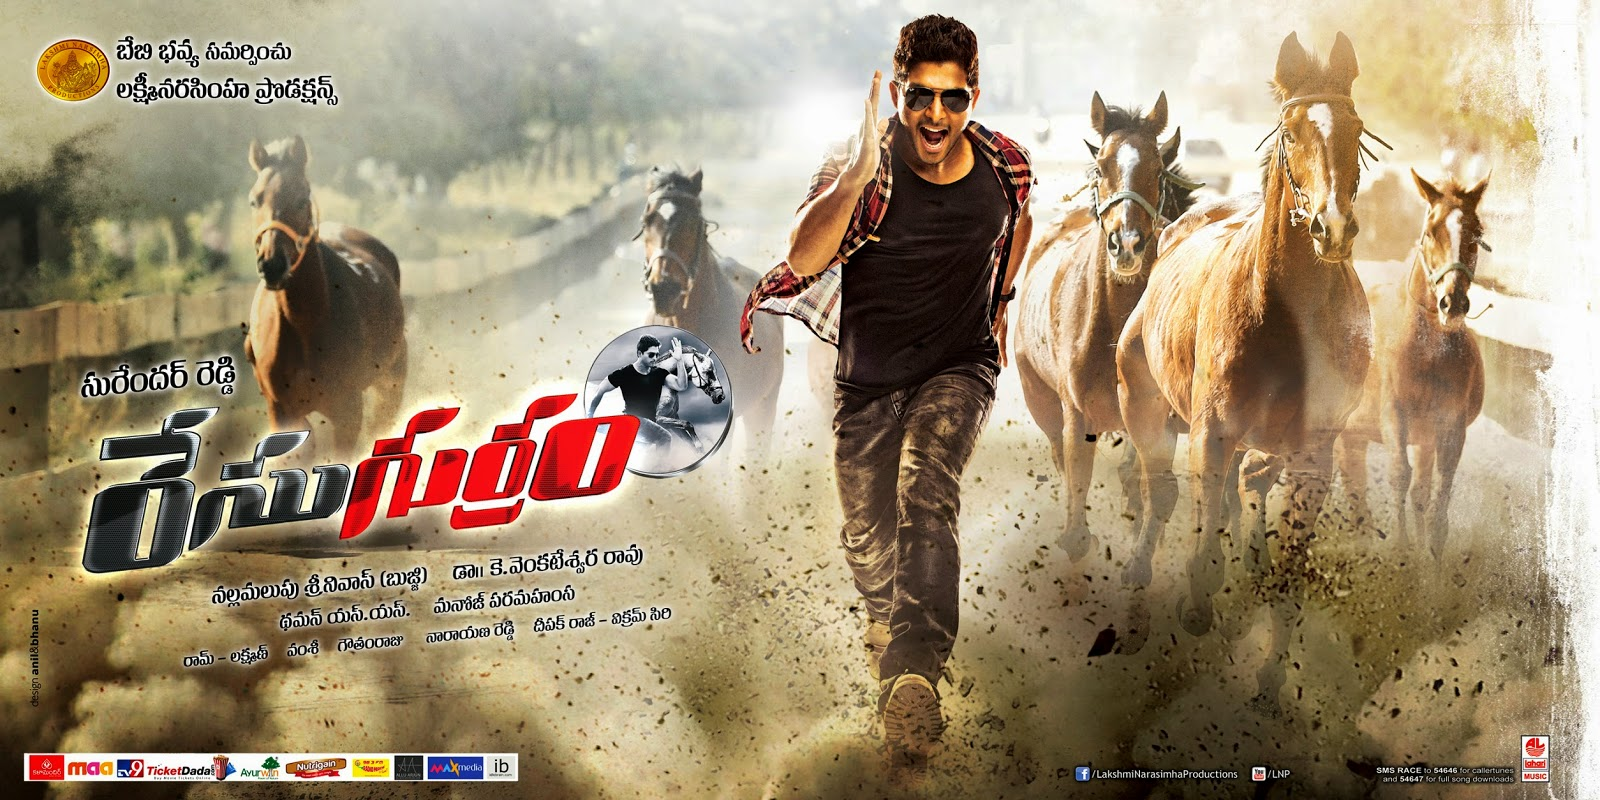 Rocking movies of the ultimate heartthrob Allu Arjun 6